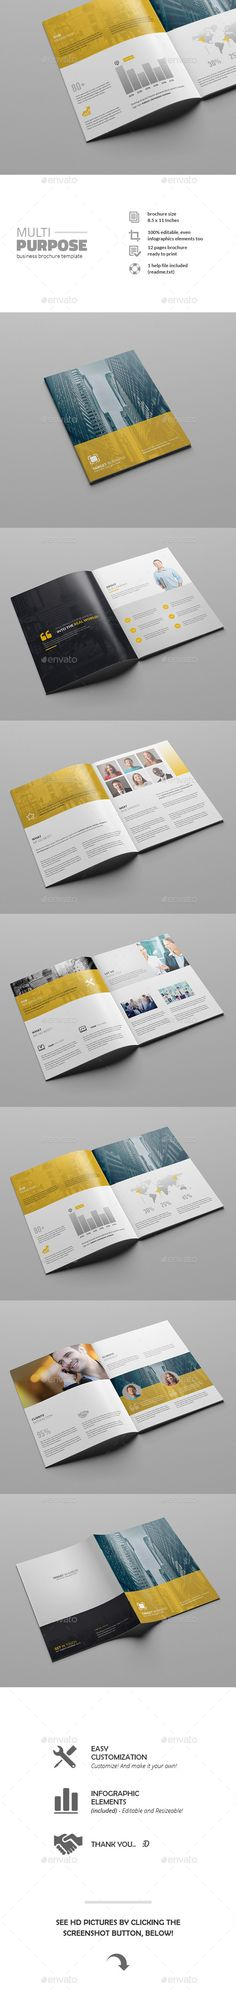 Multipurpose Business Brochure Template #design Download: http://graphicriver.net/item/multipurpose-business-brochure-template/11769942?ref=ksioks